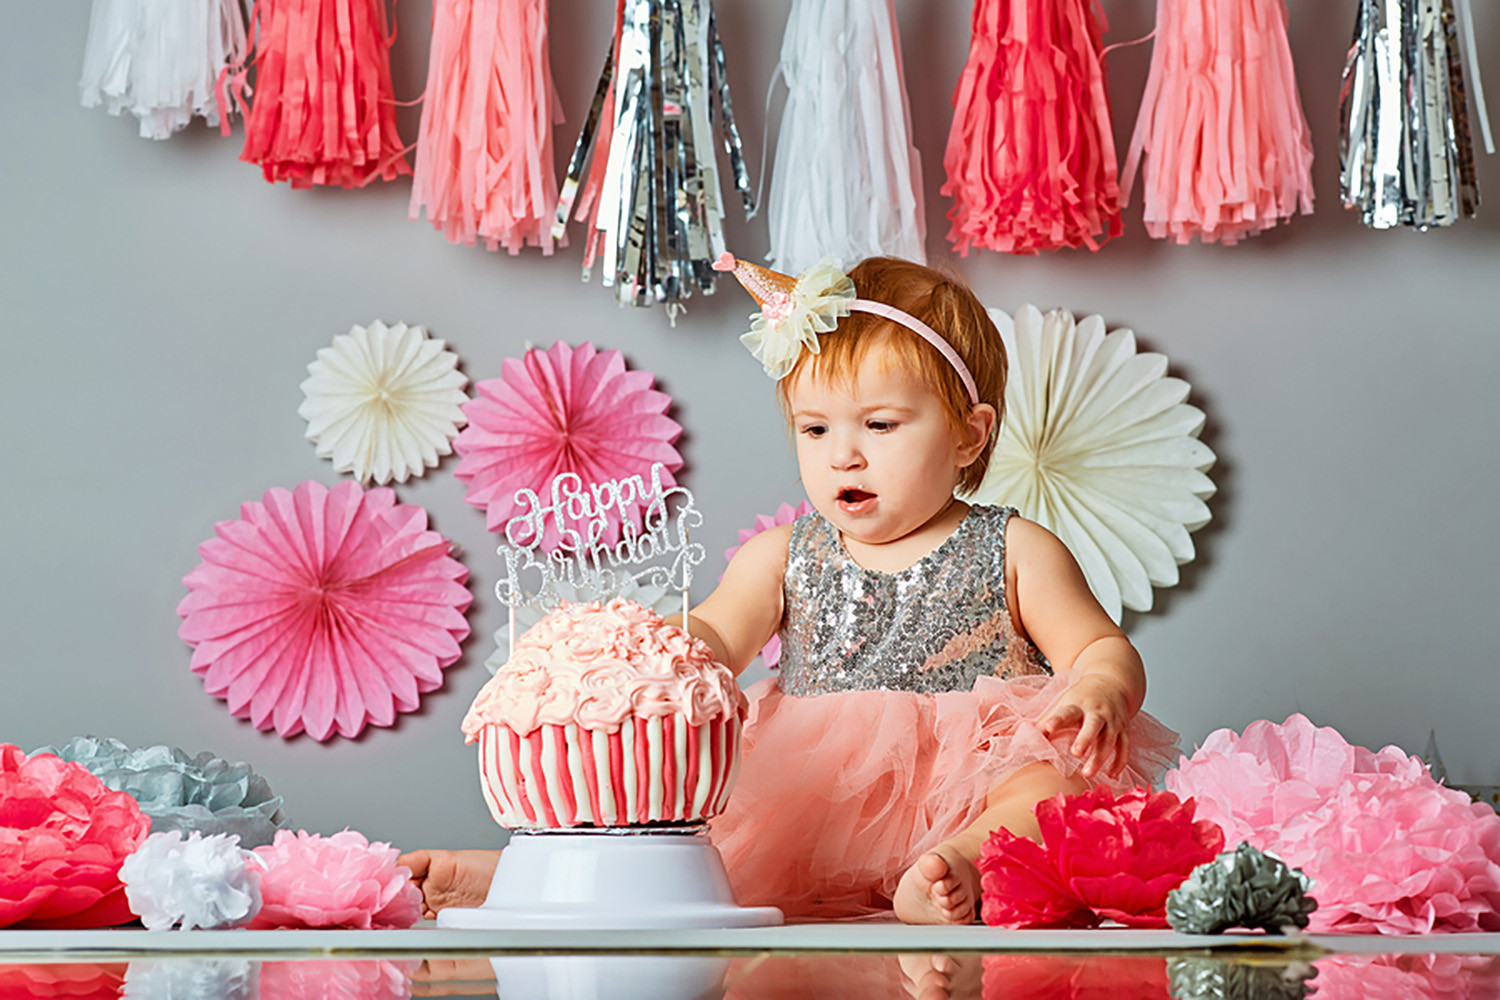 Gift Ideas For Baby First Birthday  Baby s 1st Birthday Gifts & Party Ideas for Boys & Girls